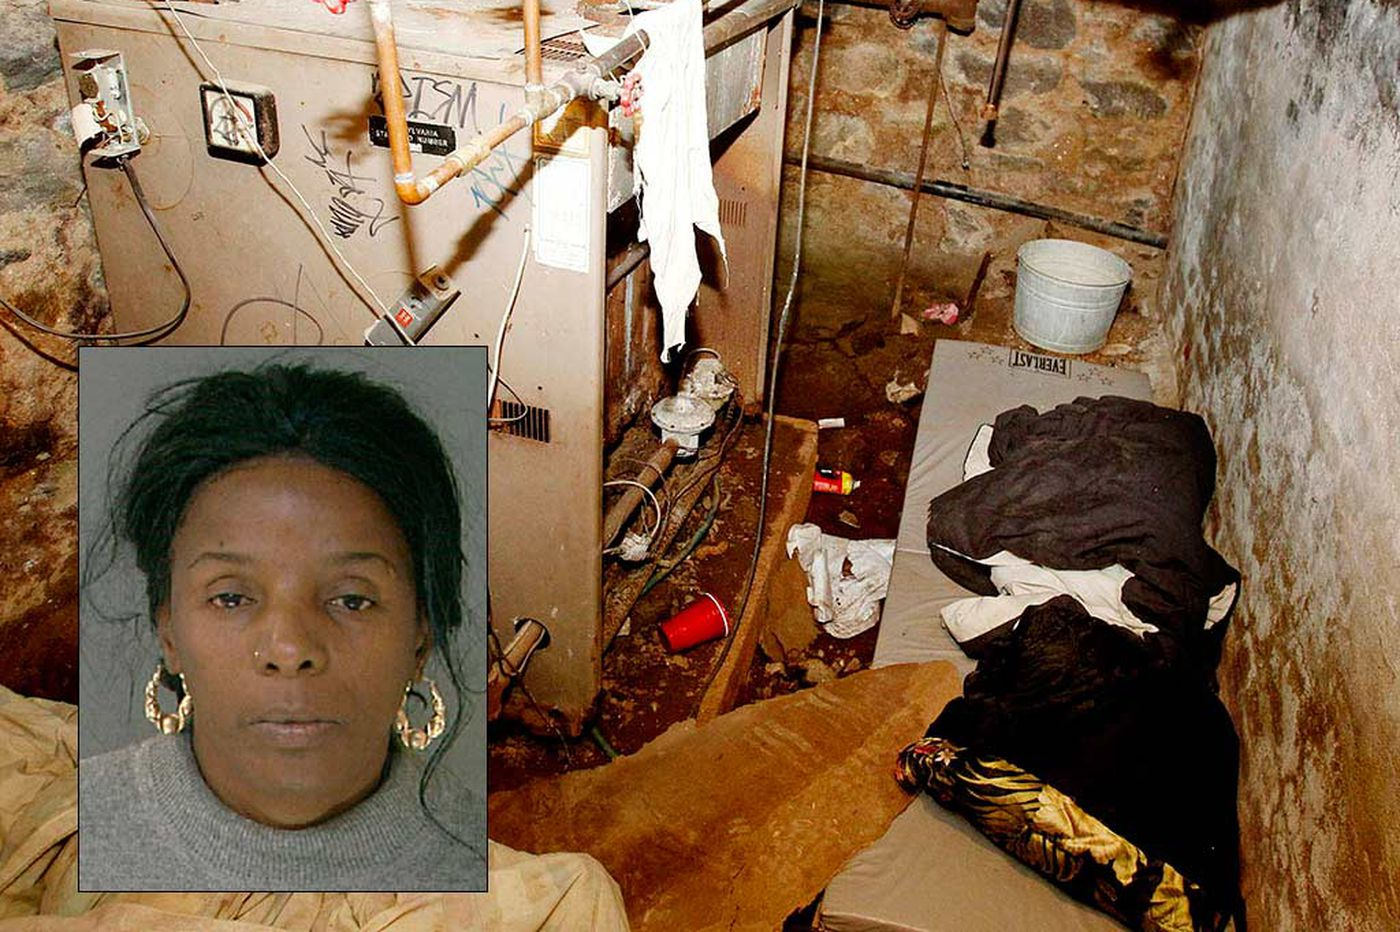 Life deal for woman who enslaved disabled adults in Tacony basement